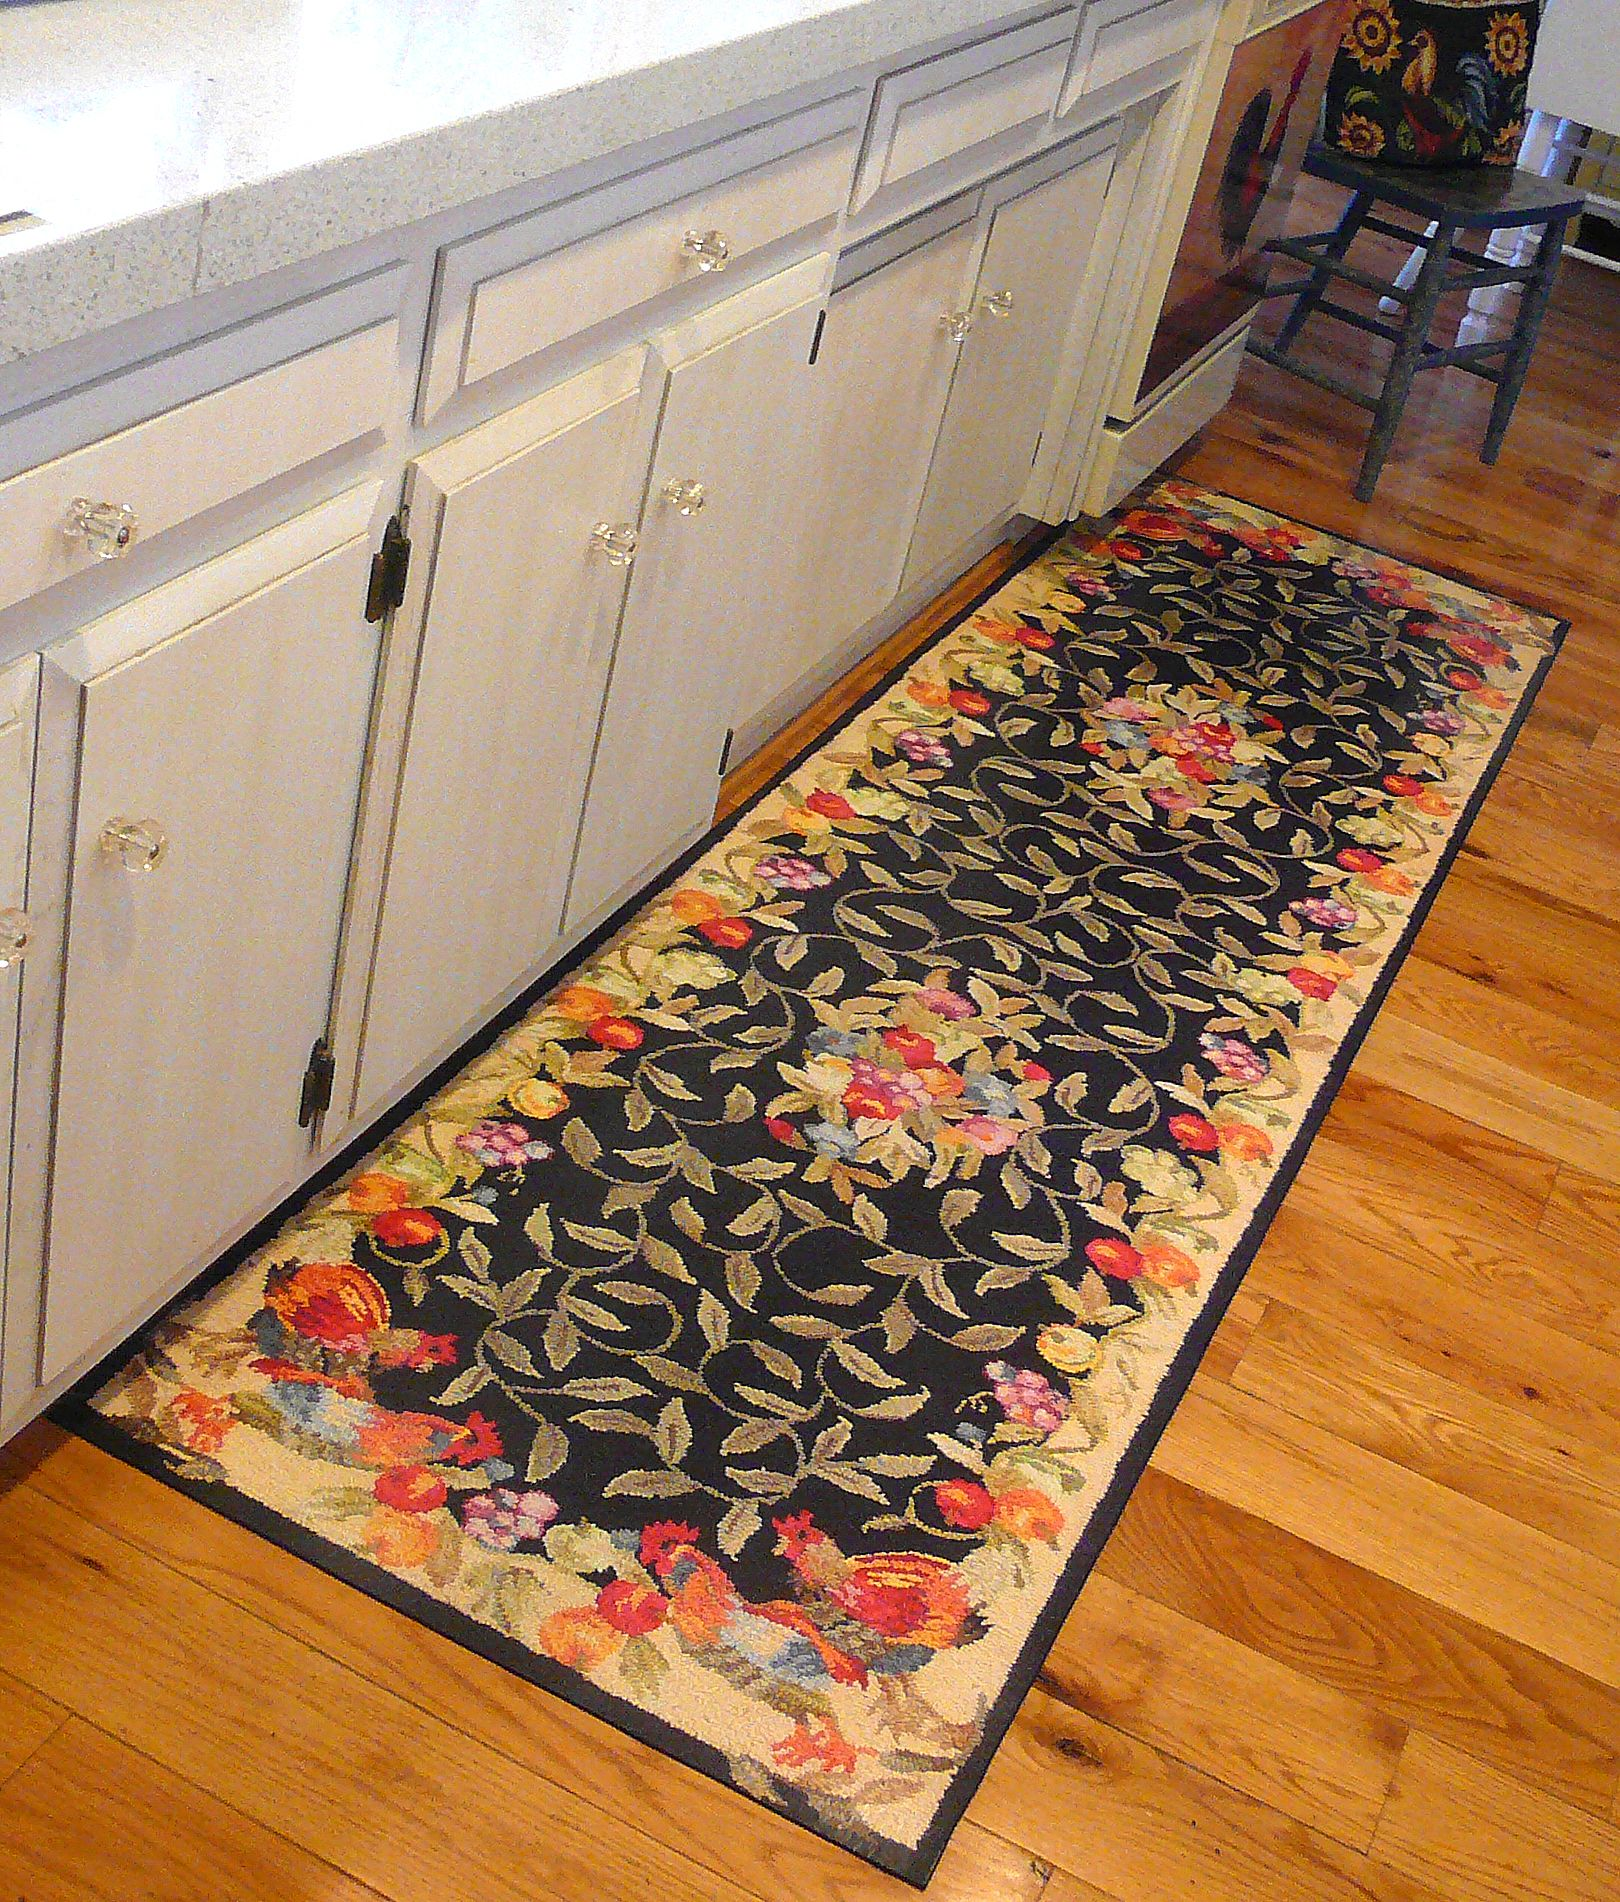 Custom made floor mats this is not a rug it s a painted floor mat